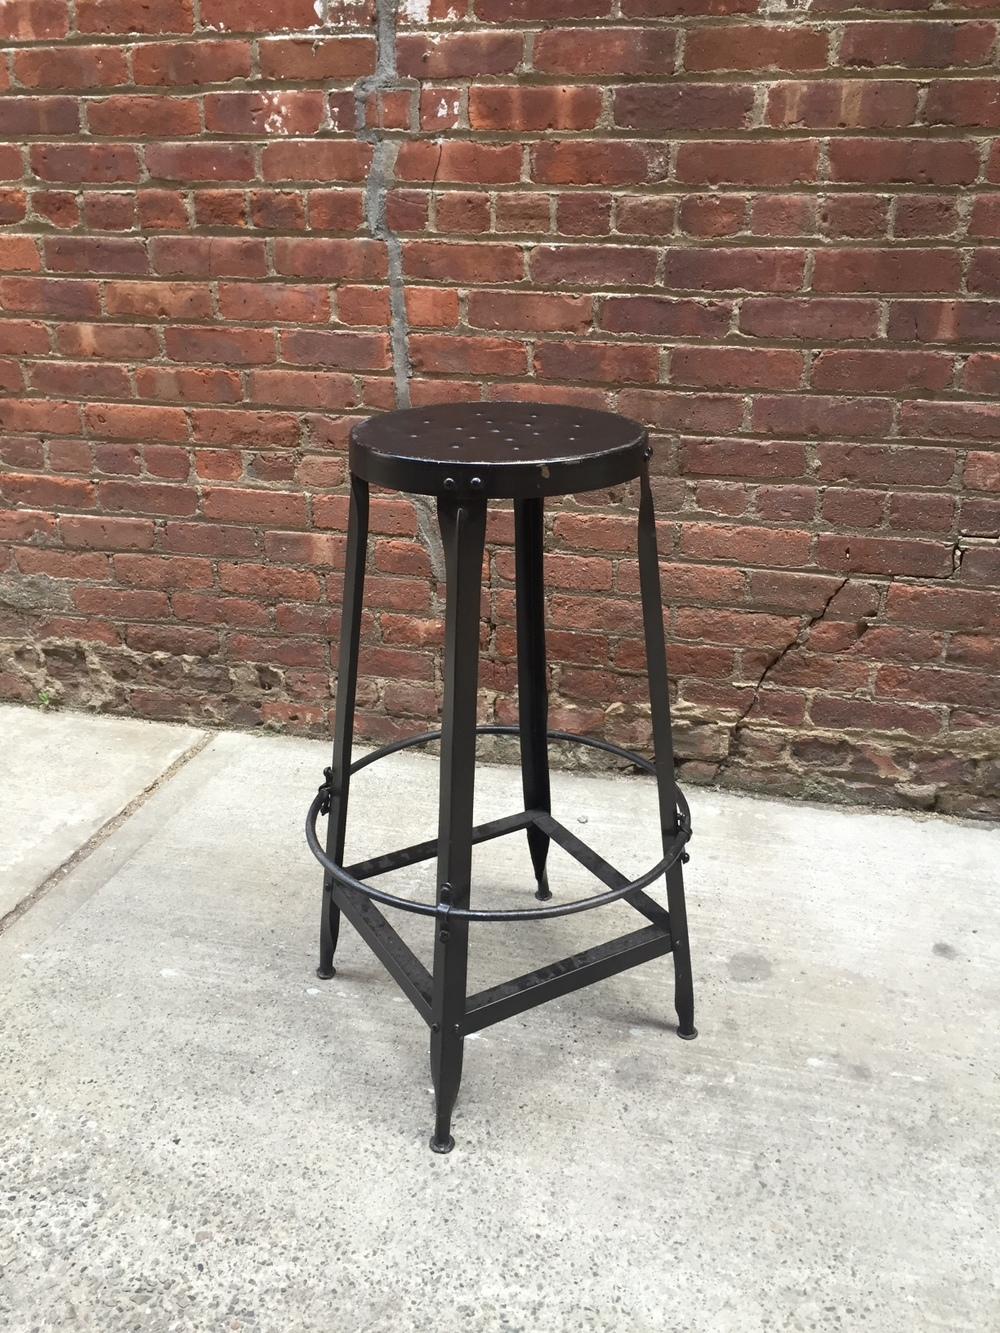 Black Beauty Stool $65